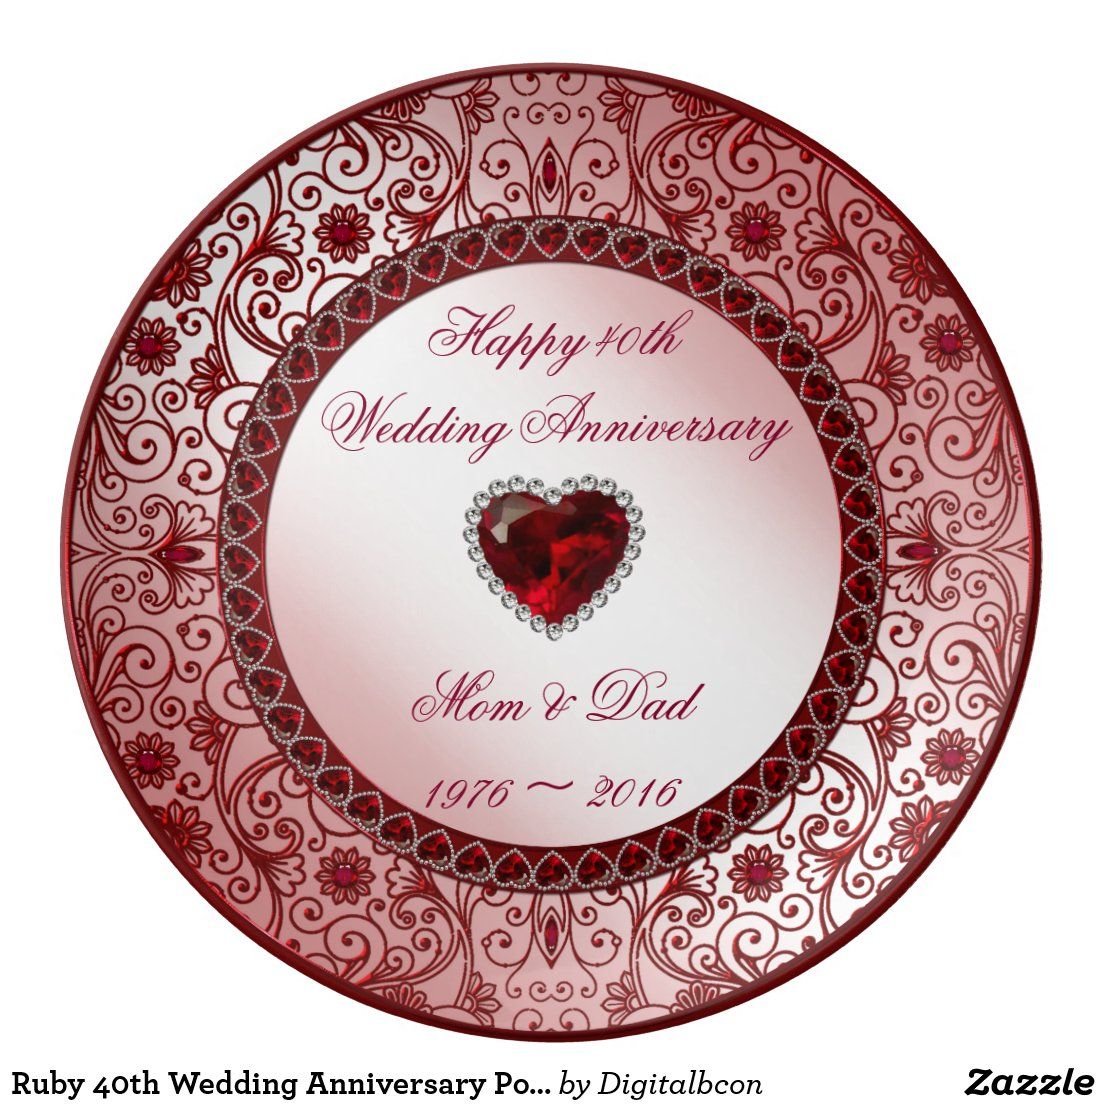 Anniversary Gifts | Personalised Gifts For Wedding Anniversaries